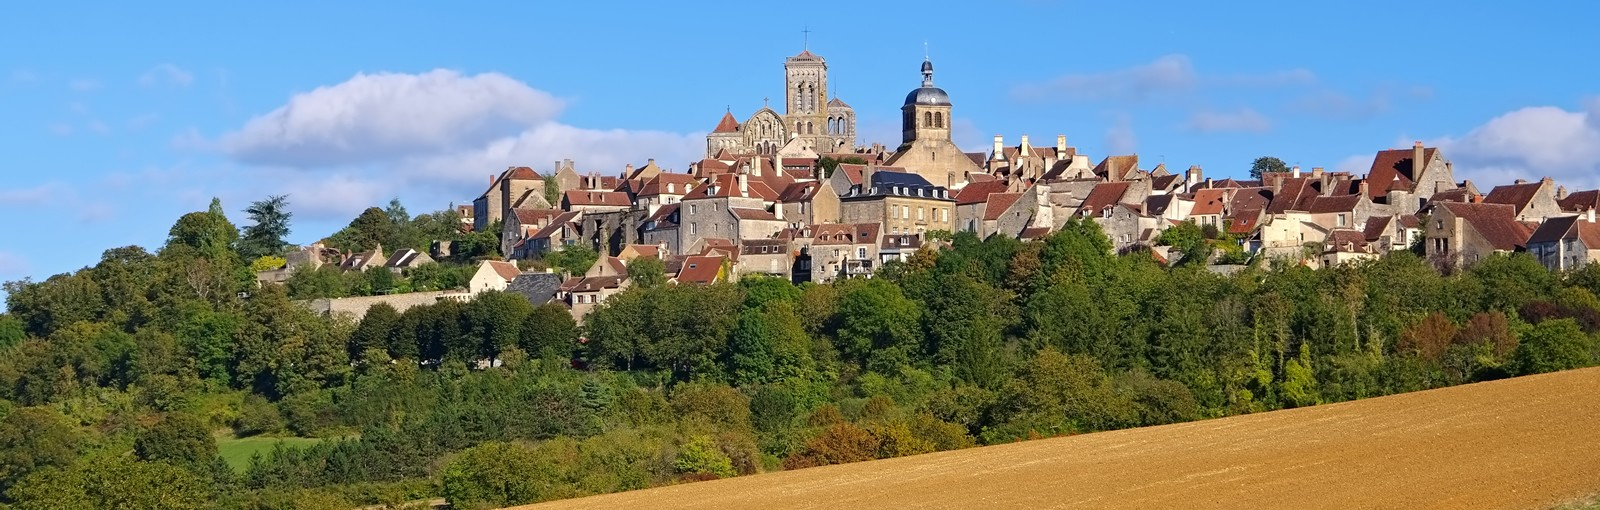 Tours 2 days in Burgundy: Chablis, Beaune, and the 'Grands Crus' wine route' - Burgundy - Multiday tours from Paris